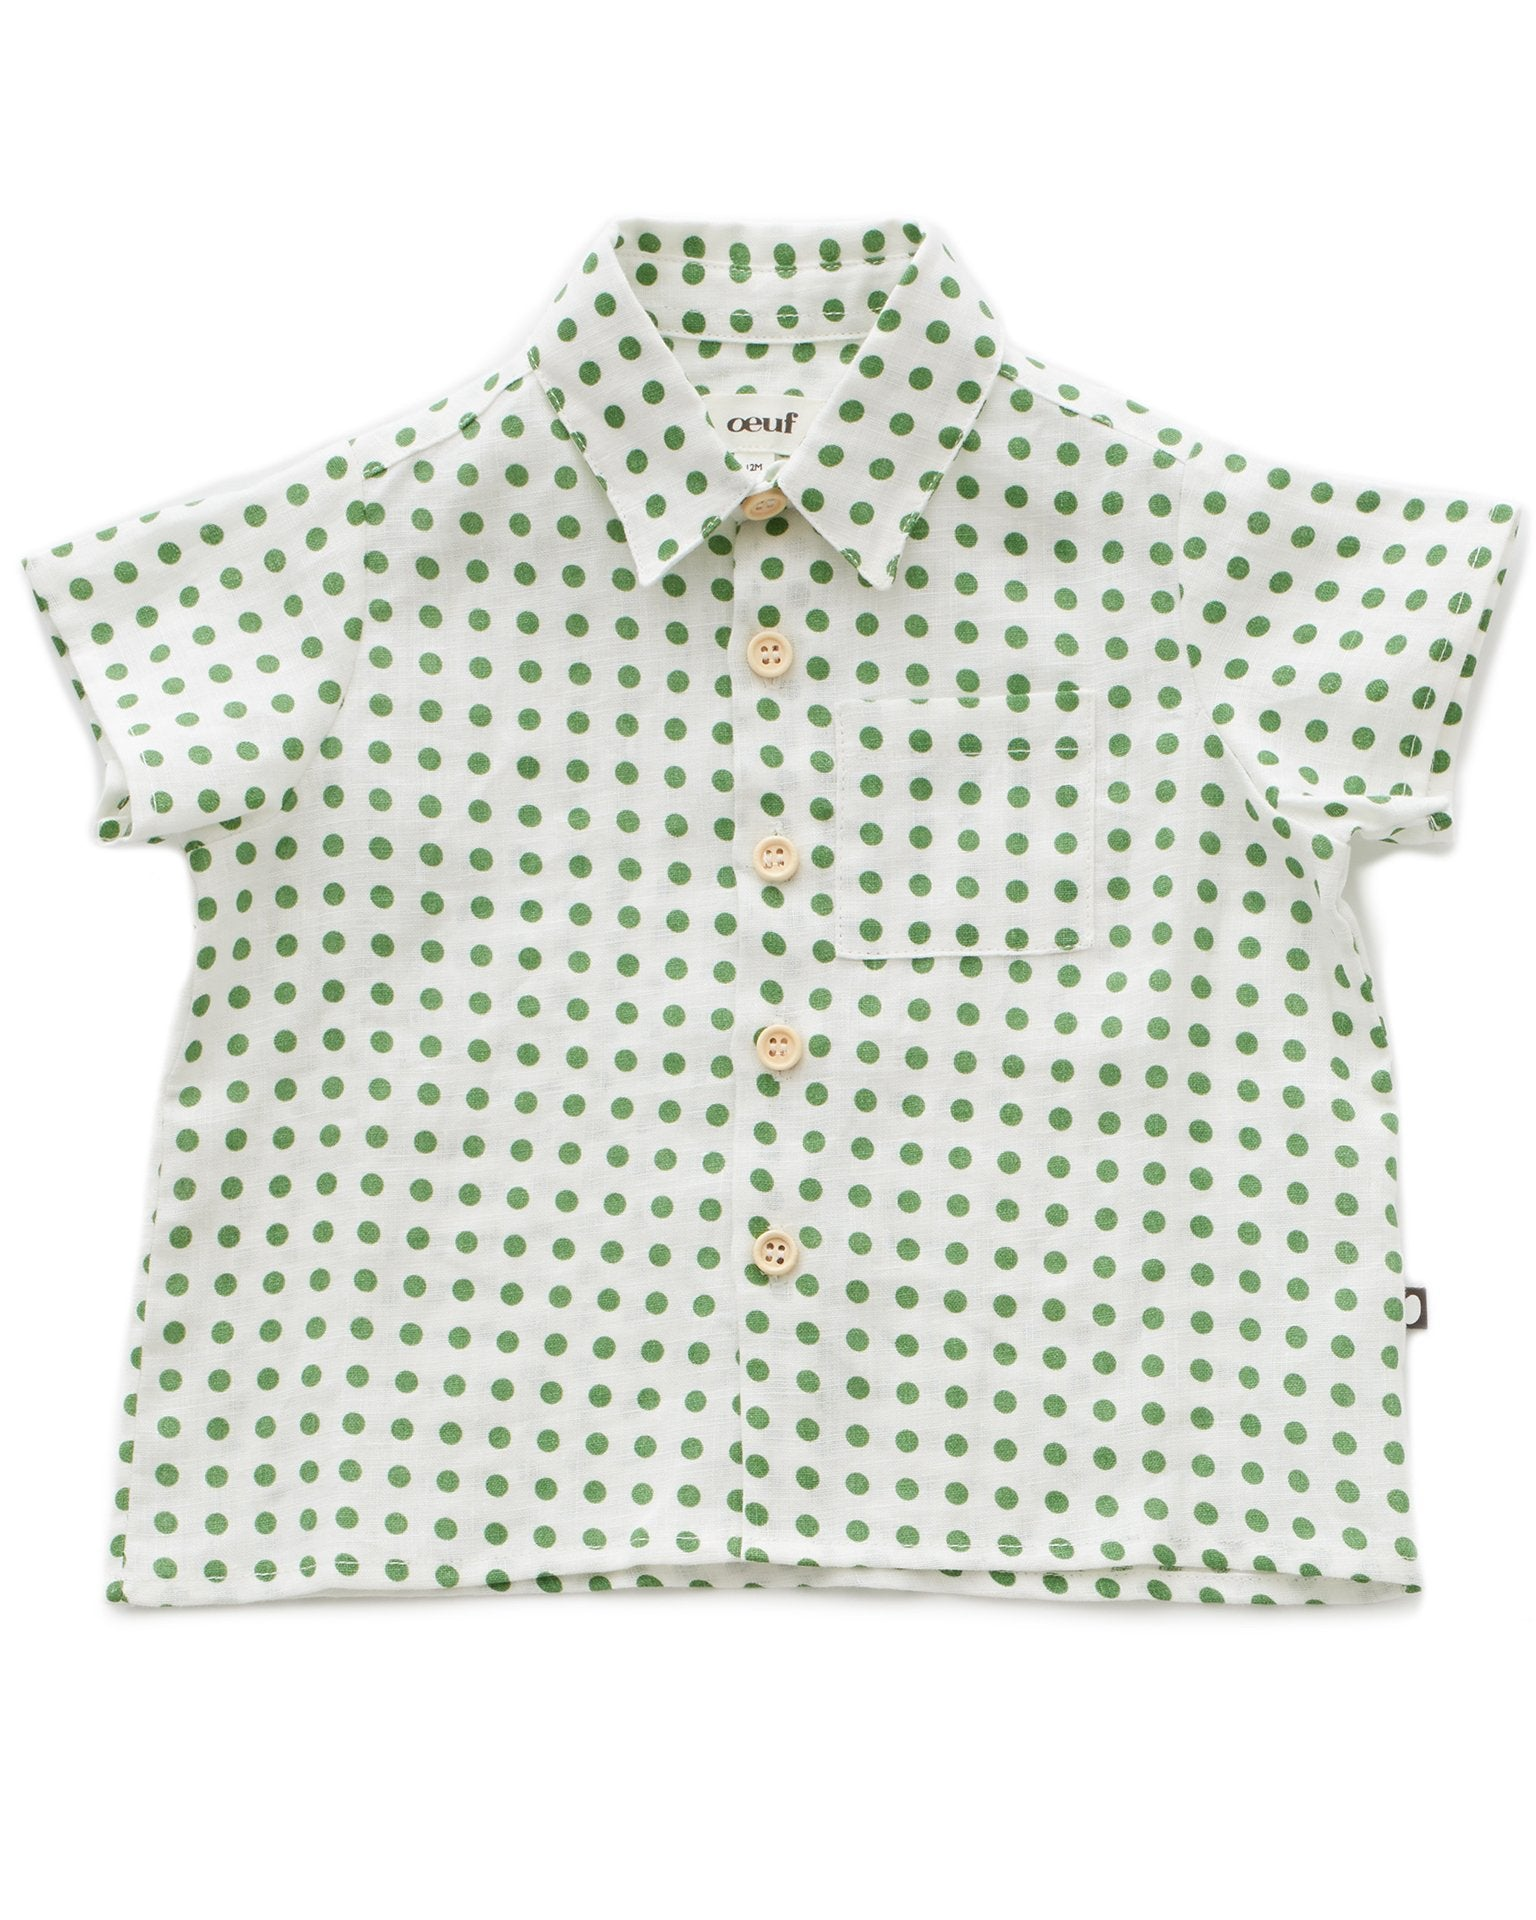 Little oeuf girl button down shirt in green dots